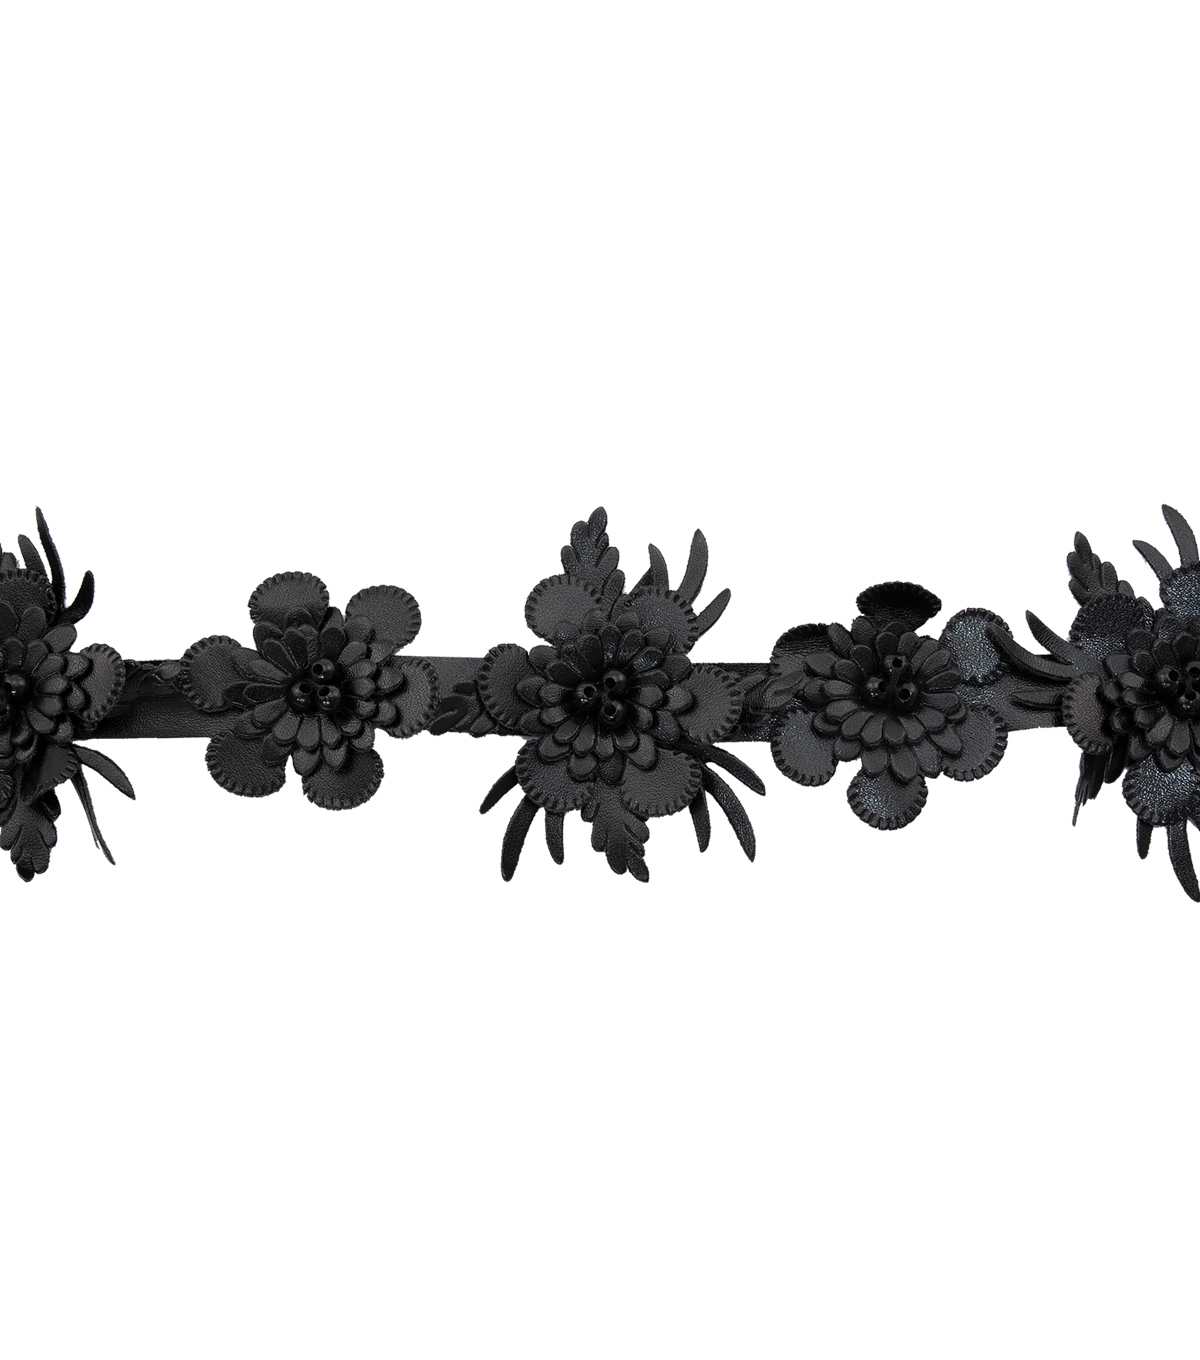 Yaya Han Black Feather Flower Cosplay Trim with Beads